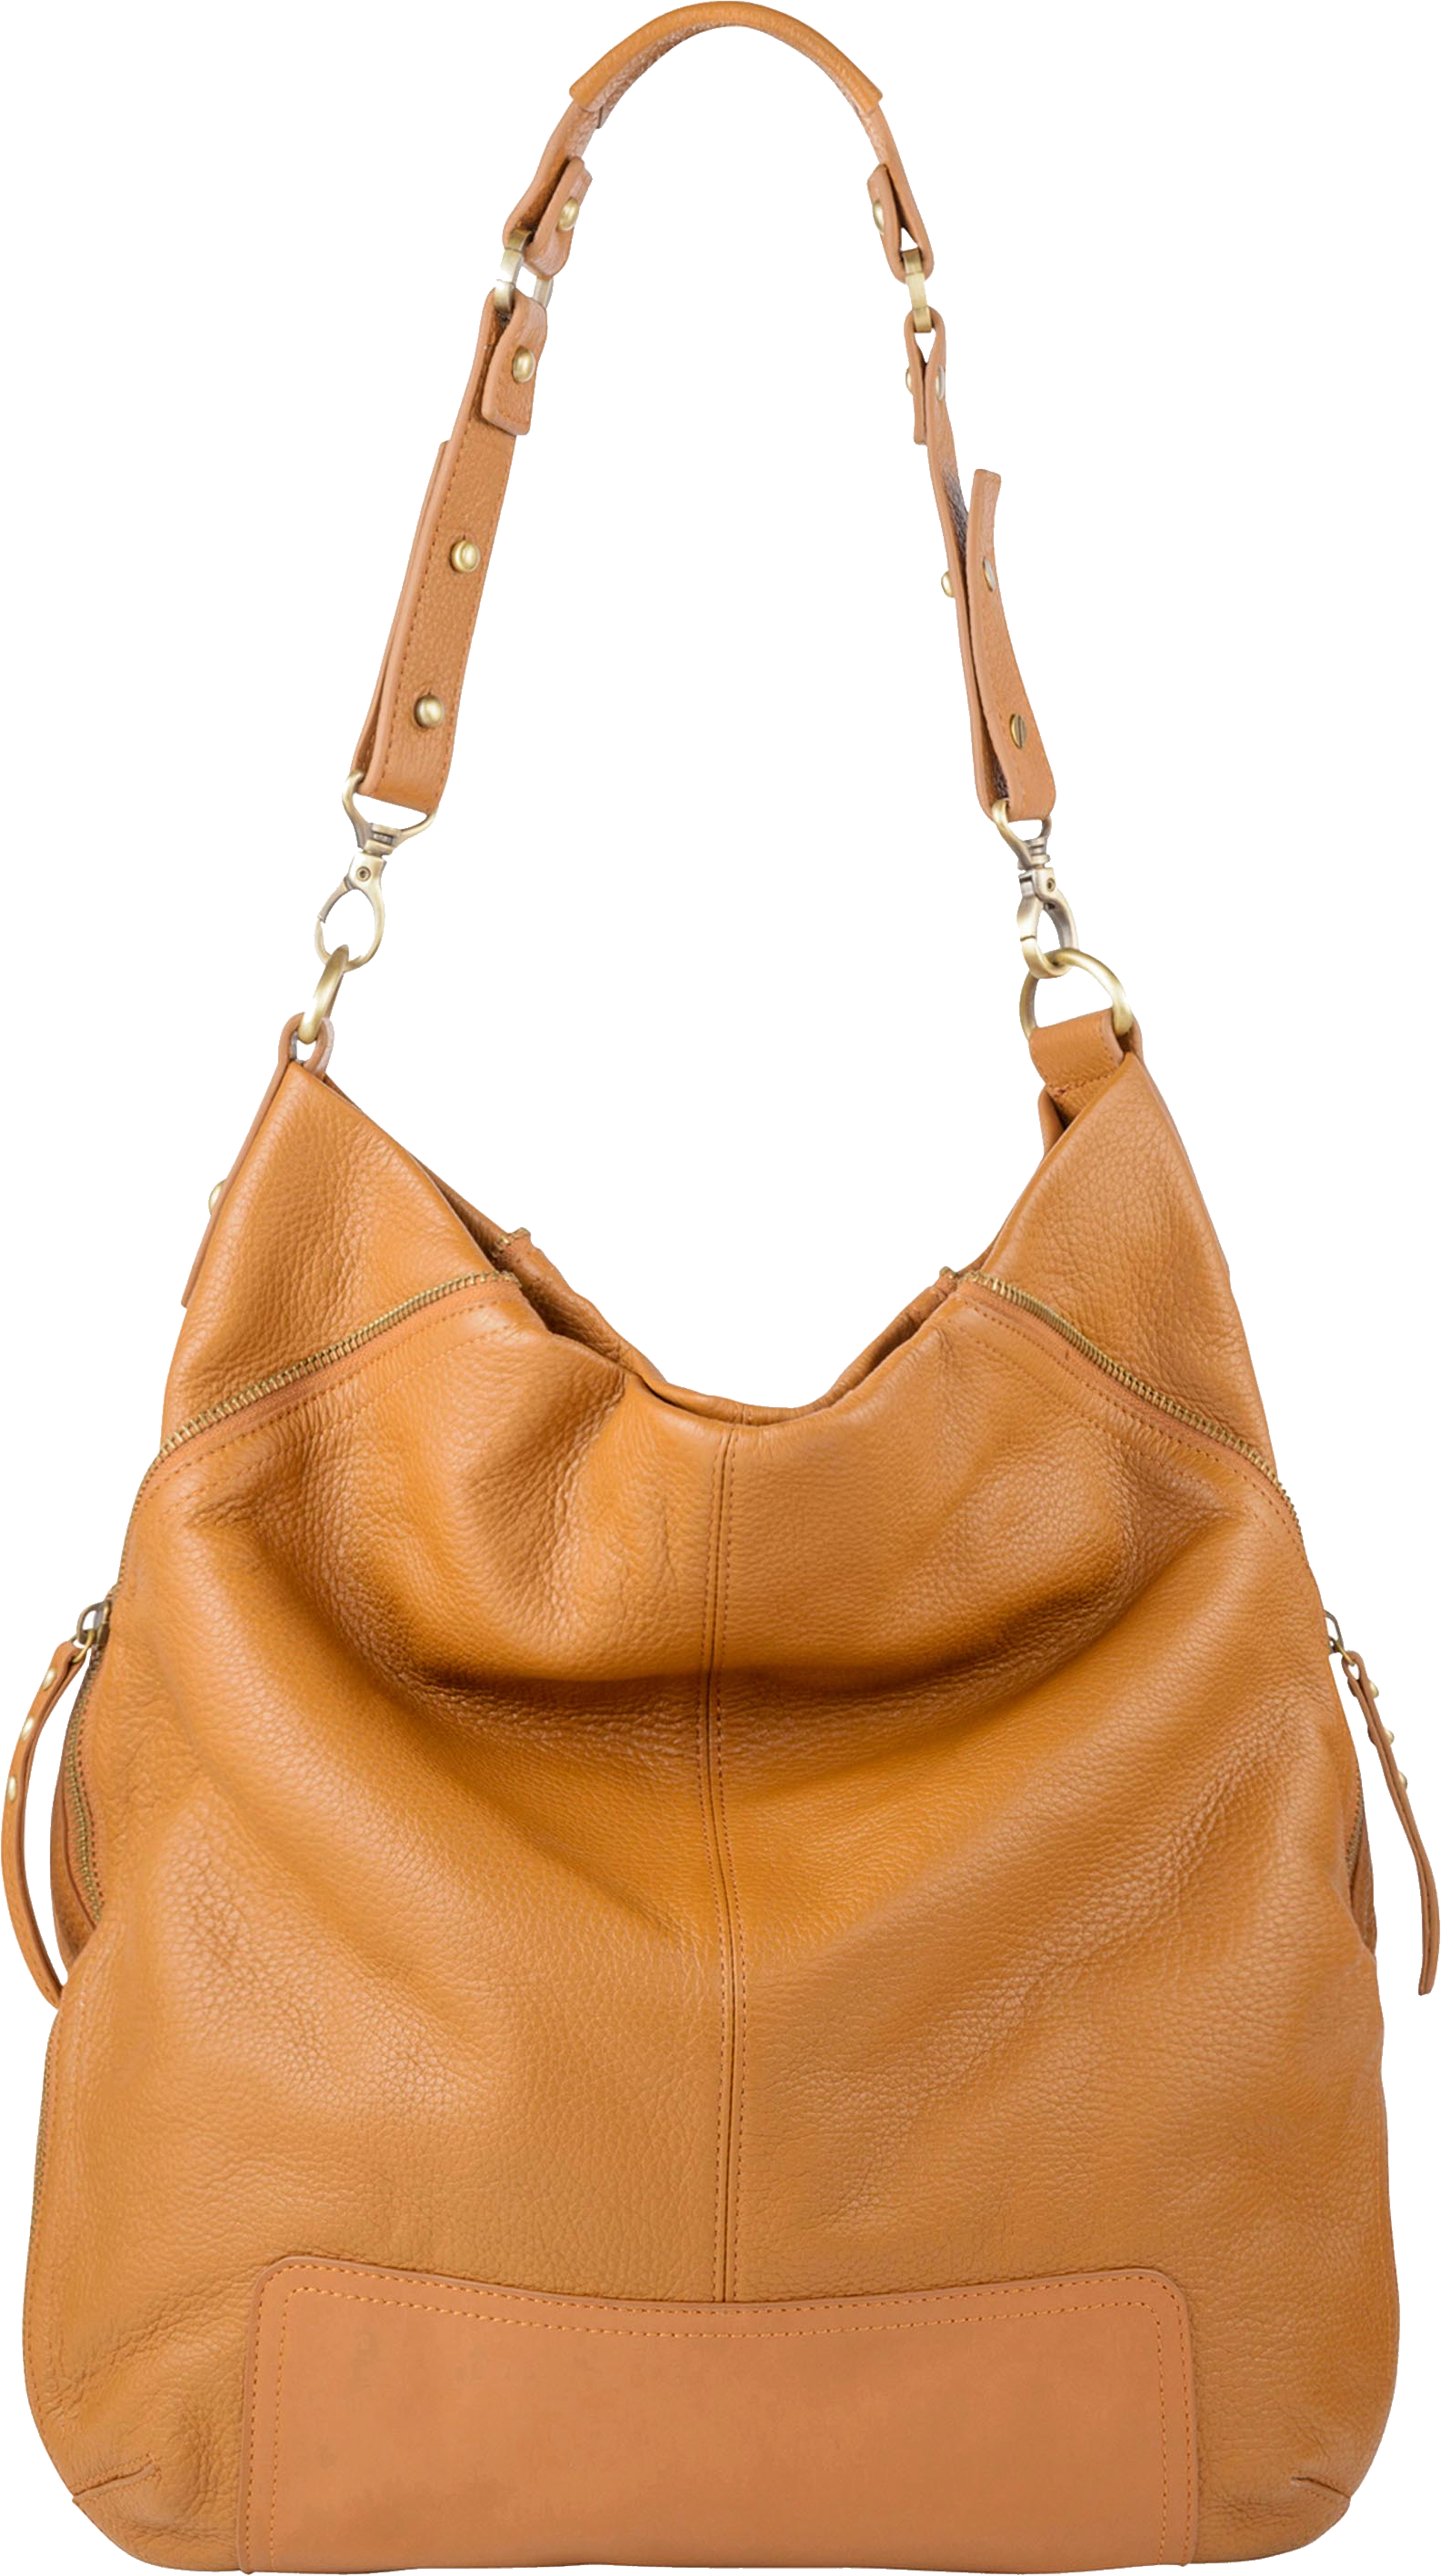 Women Bag PNG-PlusPNG.com-1585 - Women Bag PNG